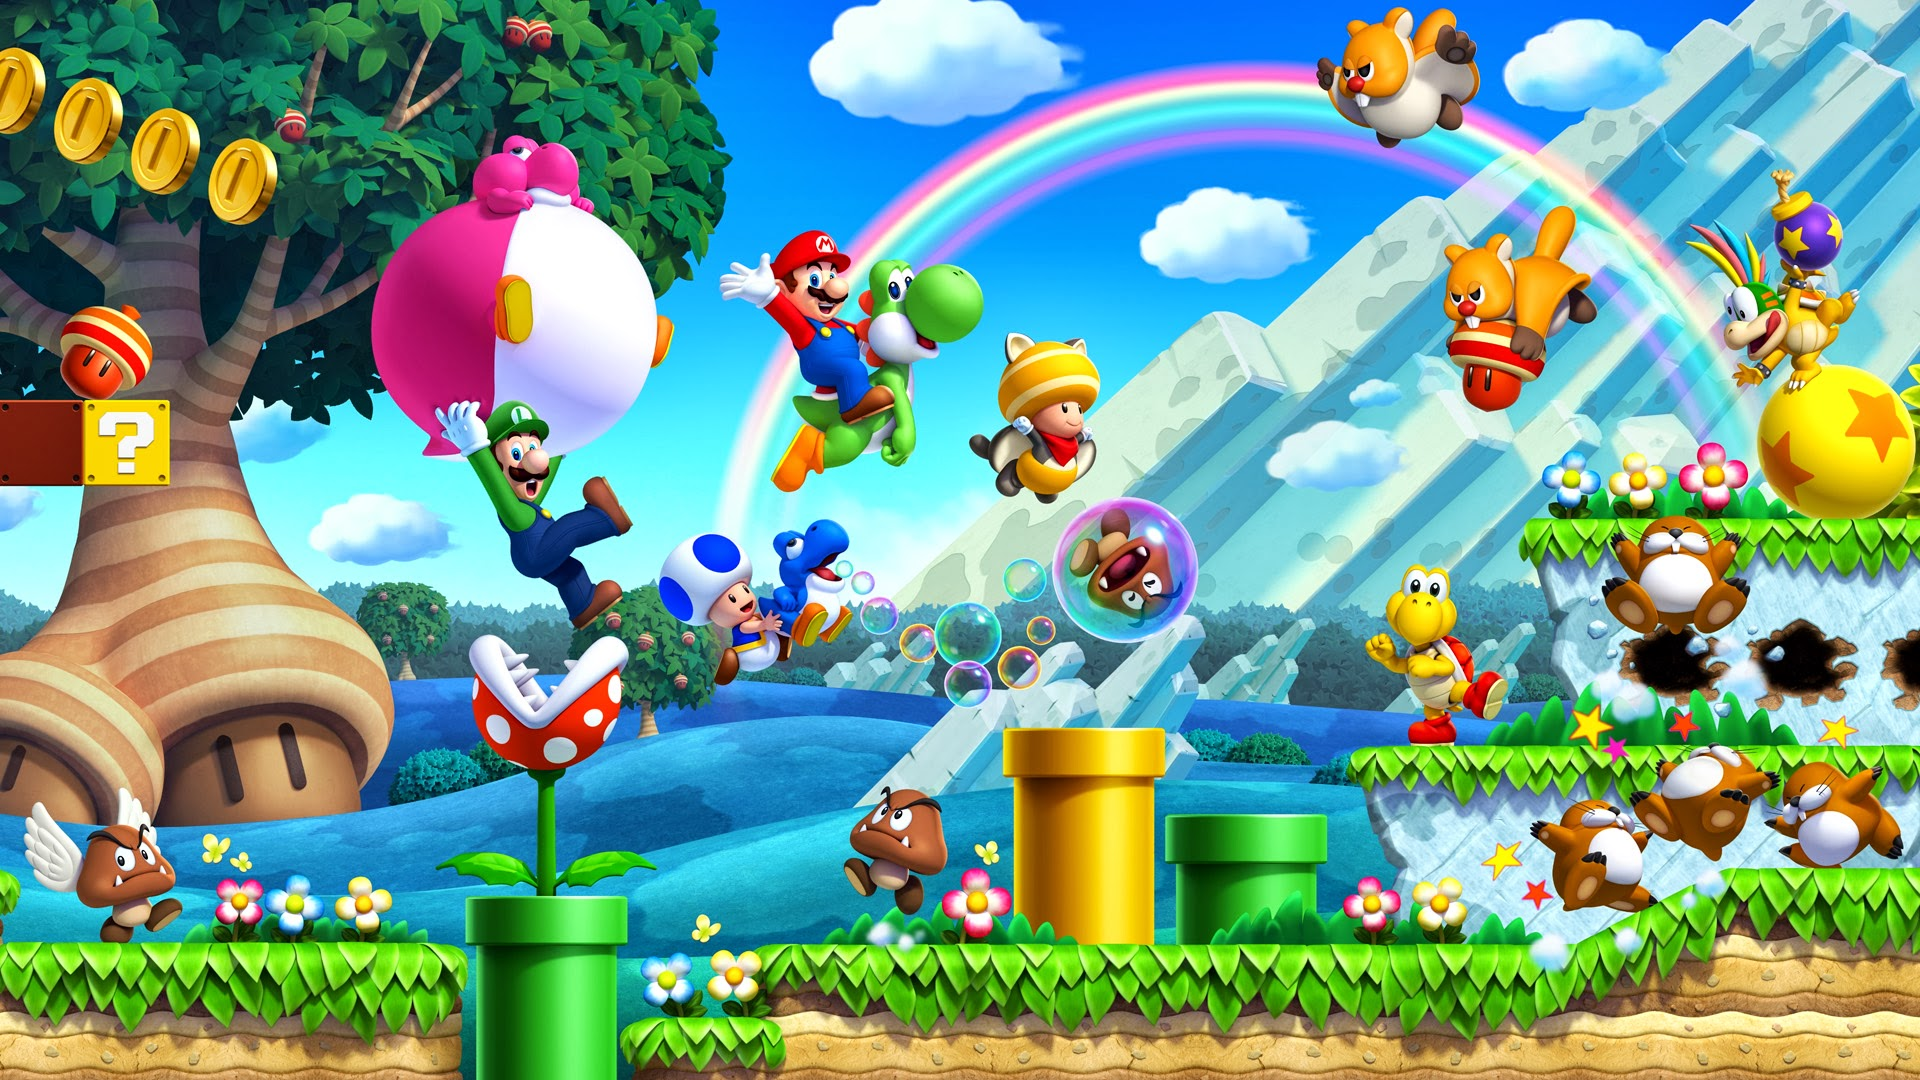 New super mario bros u wallpaper full hd fond d 39 cran and for Super fond ecran